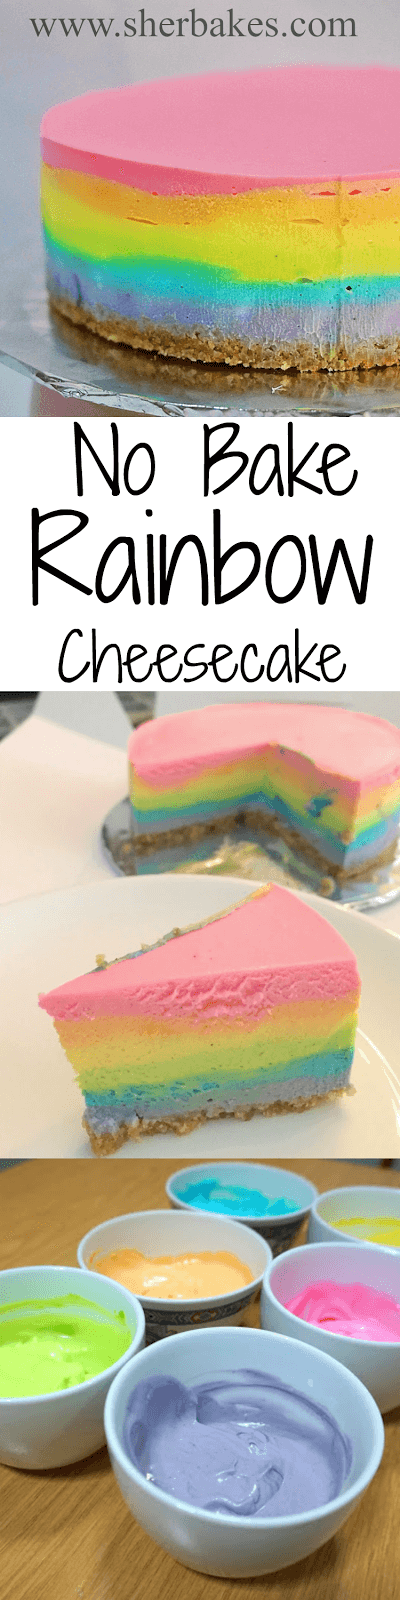 No Bake Rainbow Cheesecake by Sherbakes